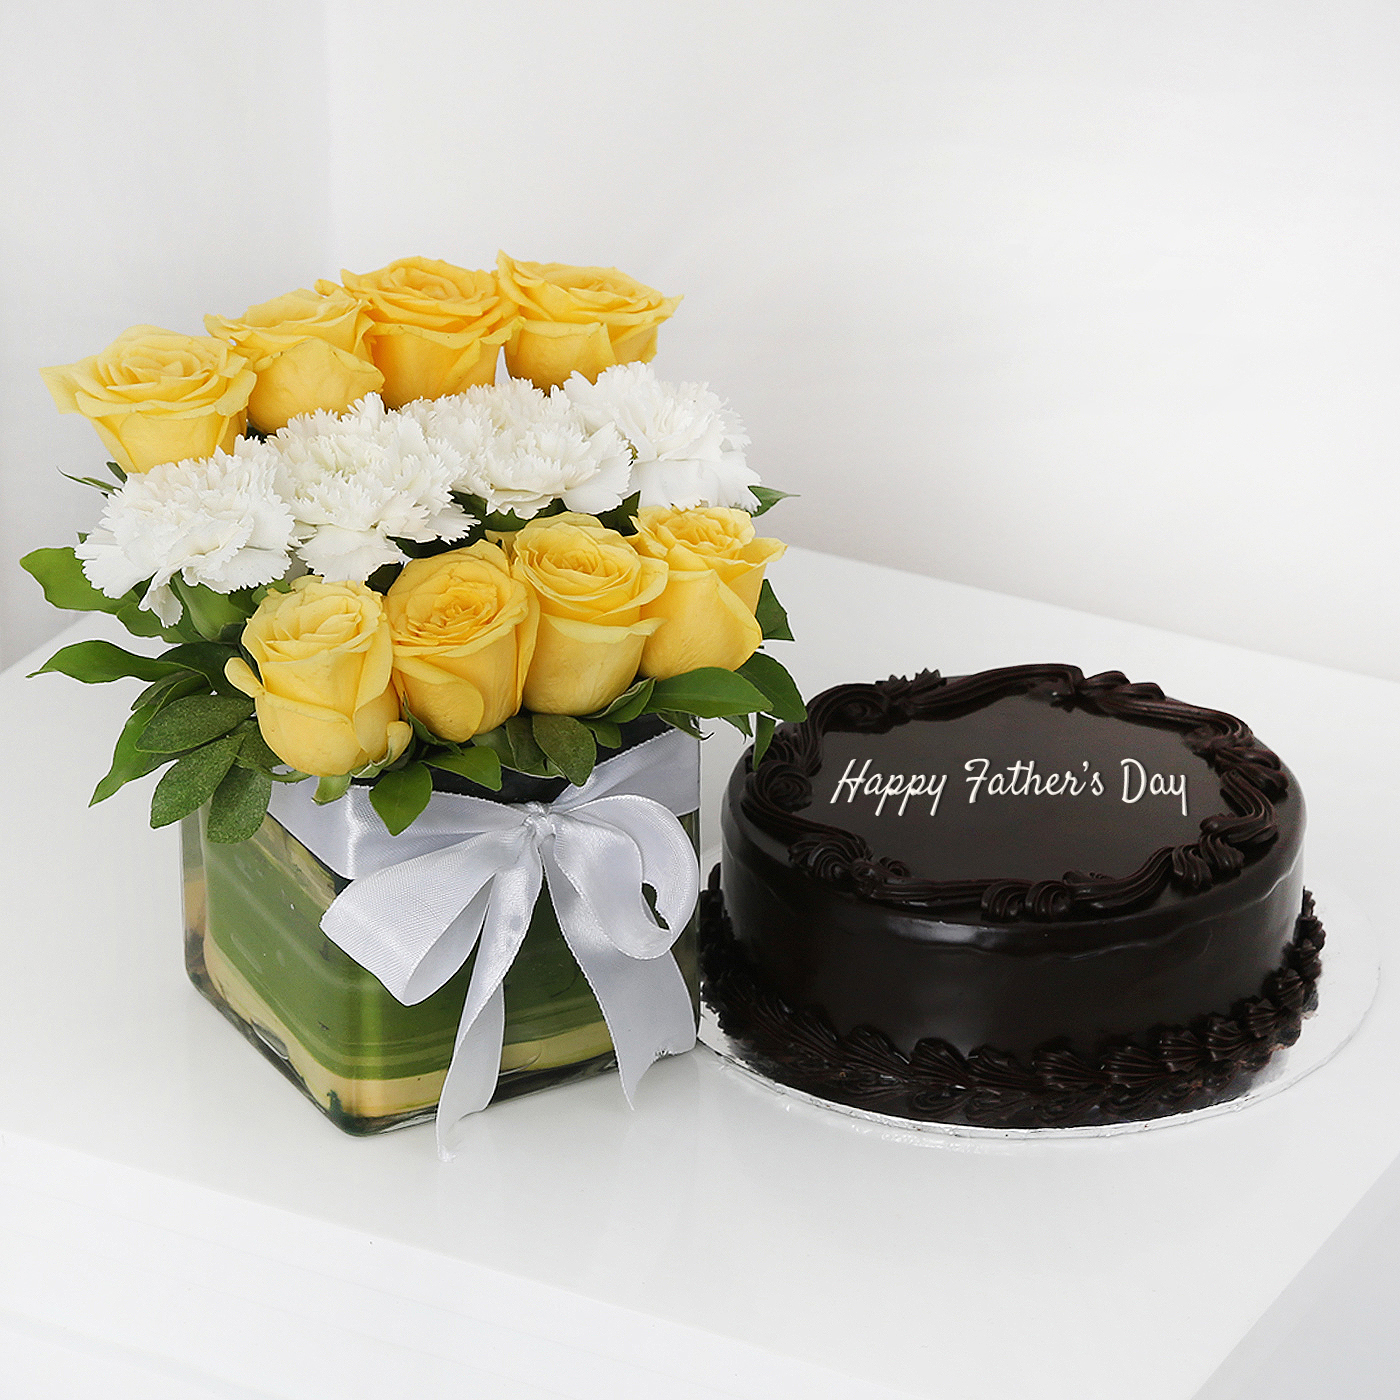 Glass-Vase-of-12-Mixed-Flowers-with-Half-Kg-Dark-Chocolate-Cake